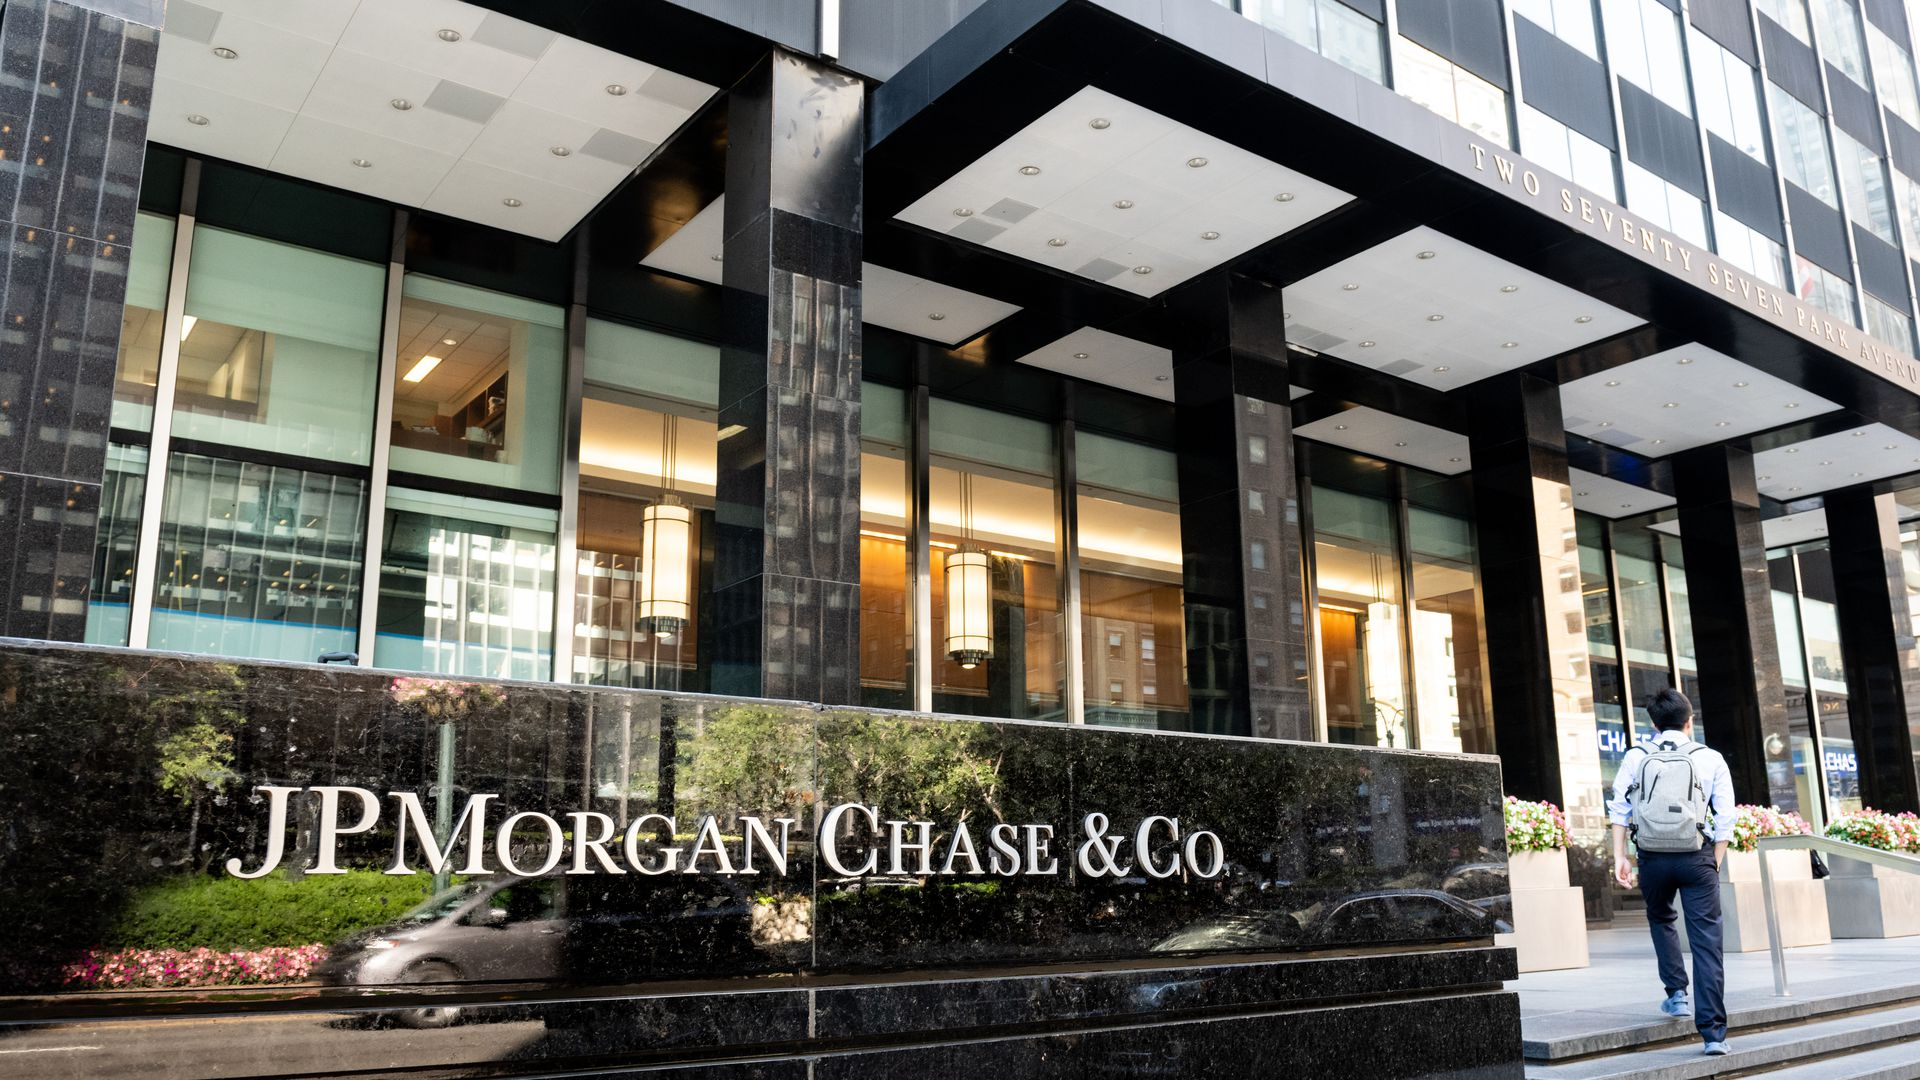 JPMorgan Chase building on Park Avenue in New York City.